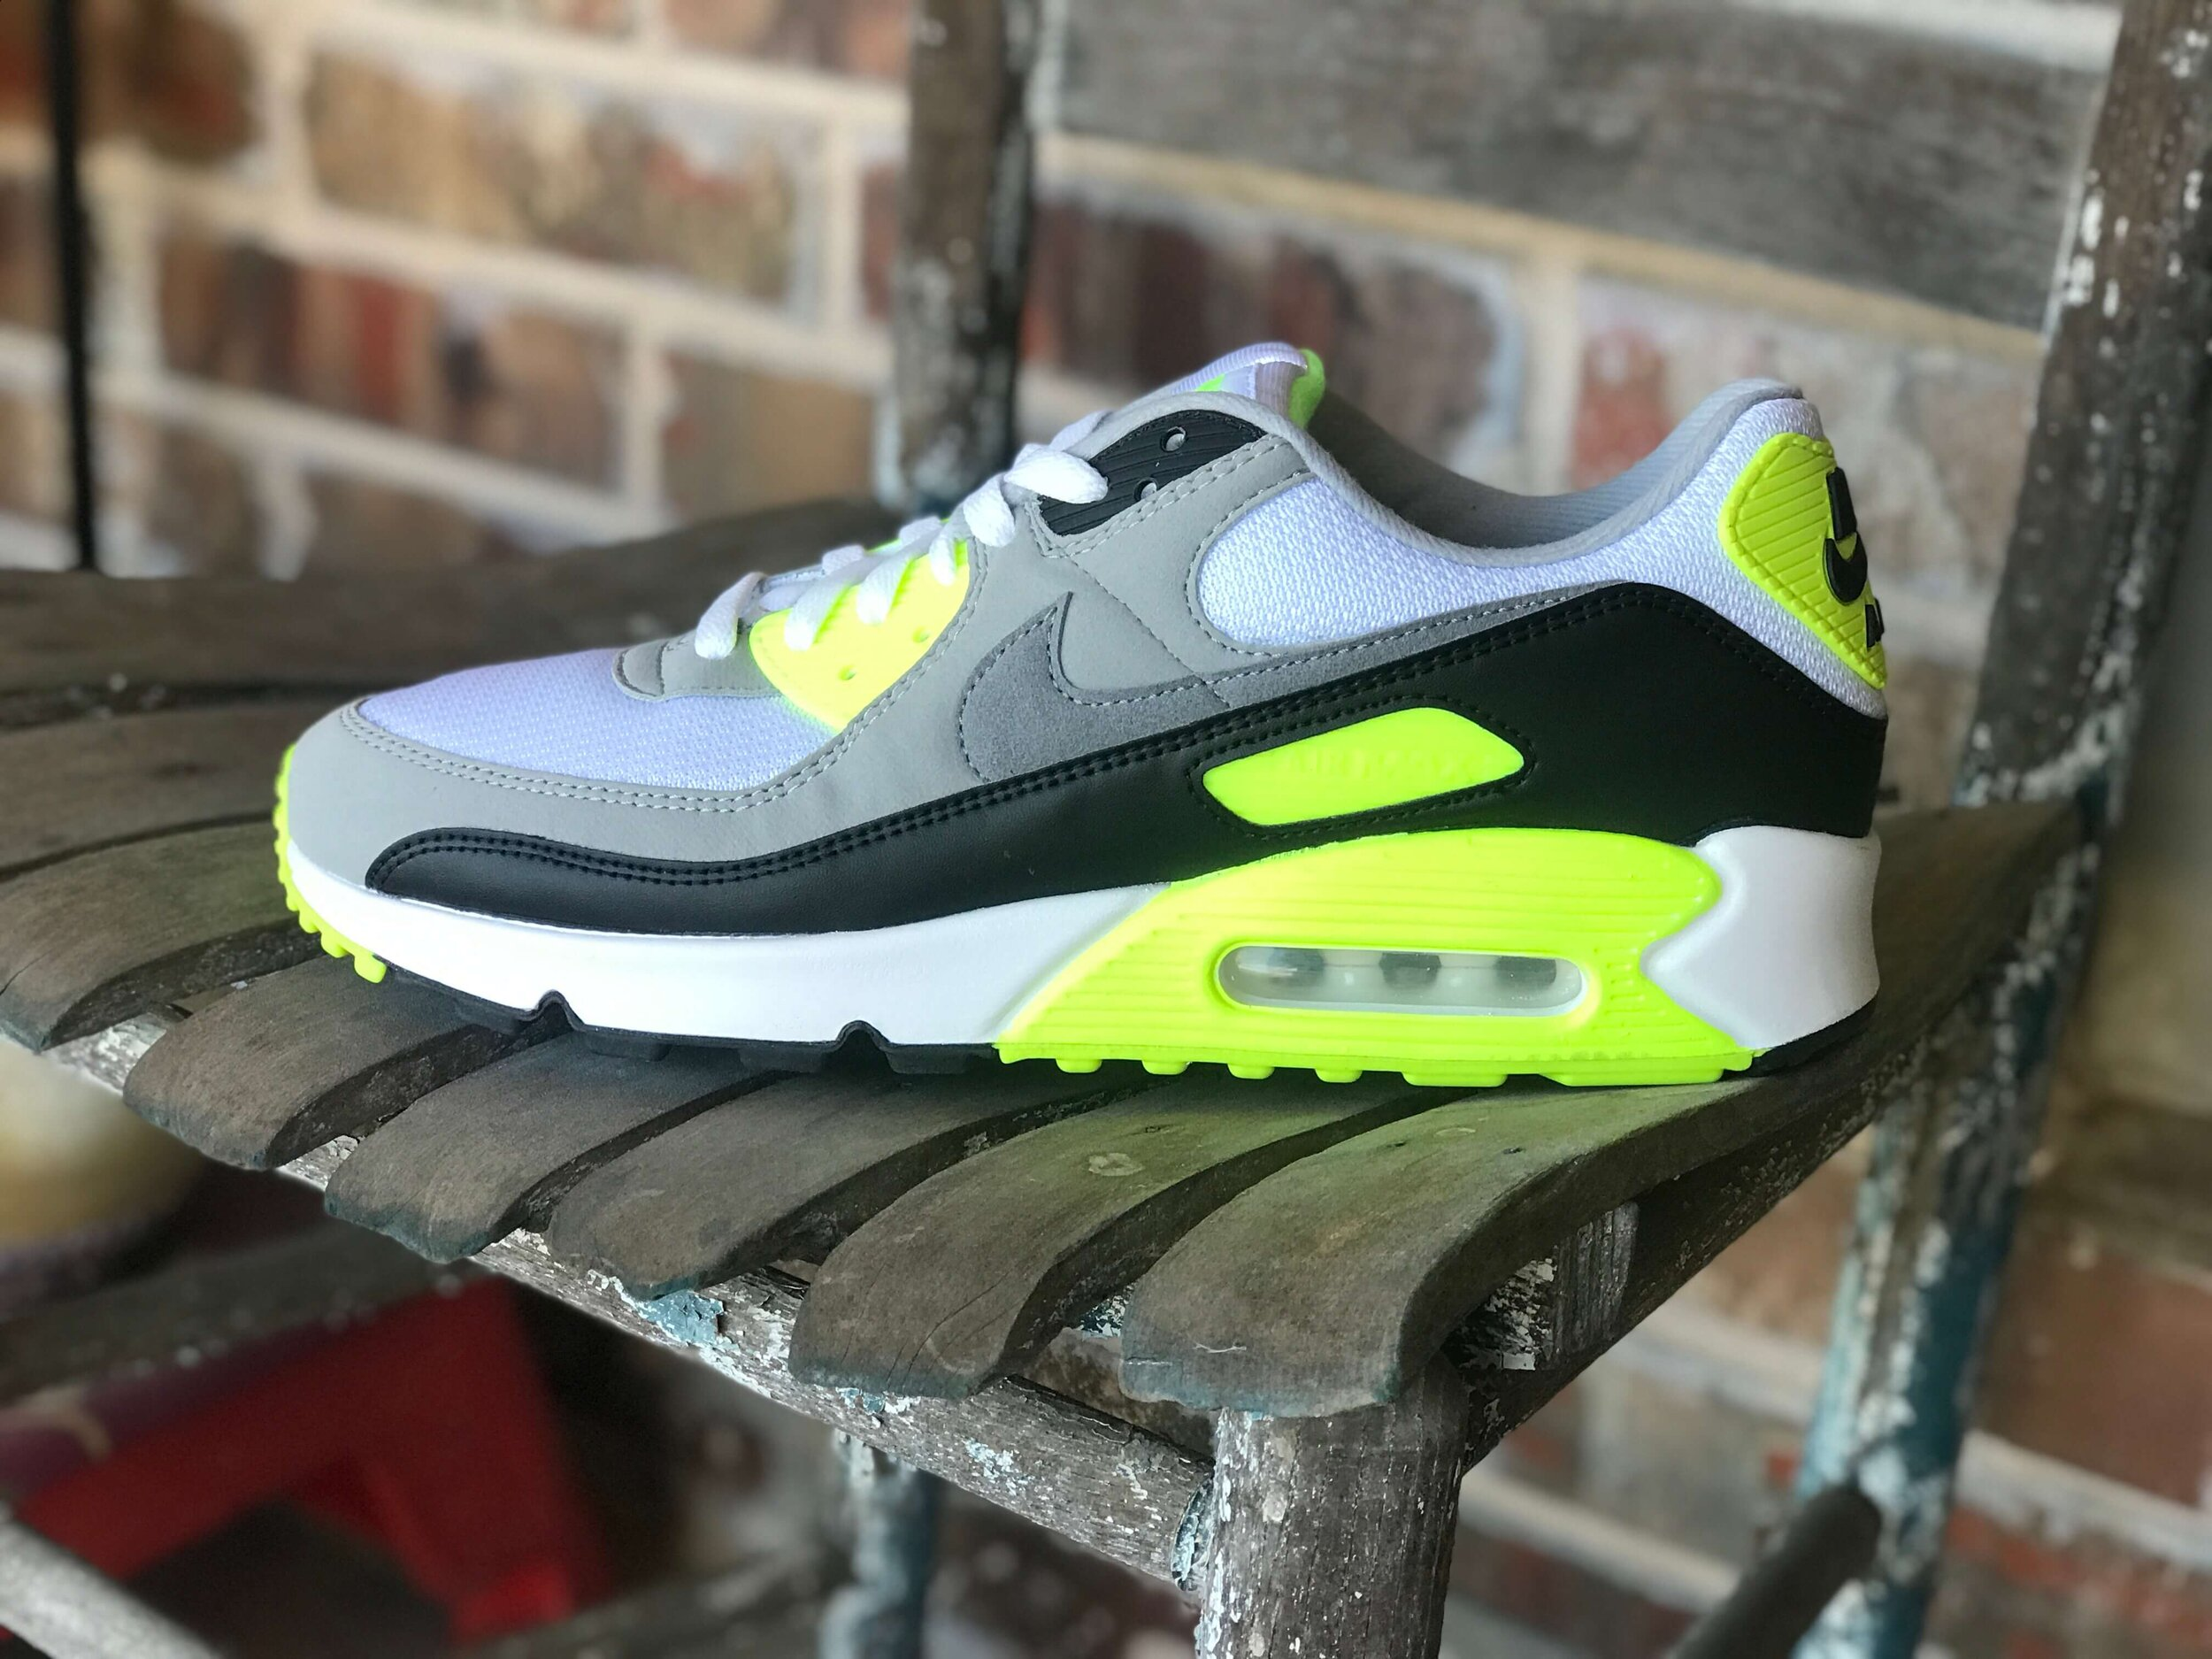 A Detailed Unboxing Of The 2020 Nike Air Max 90